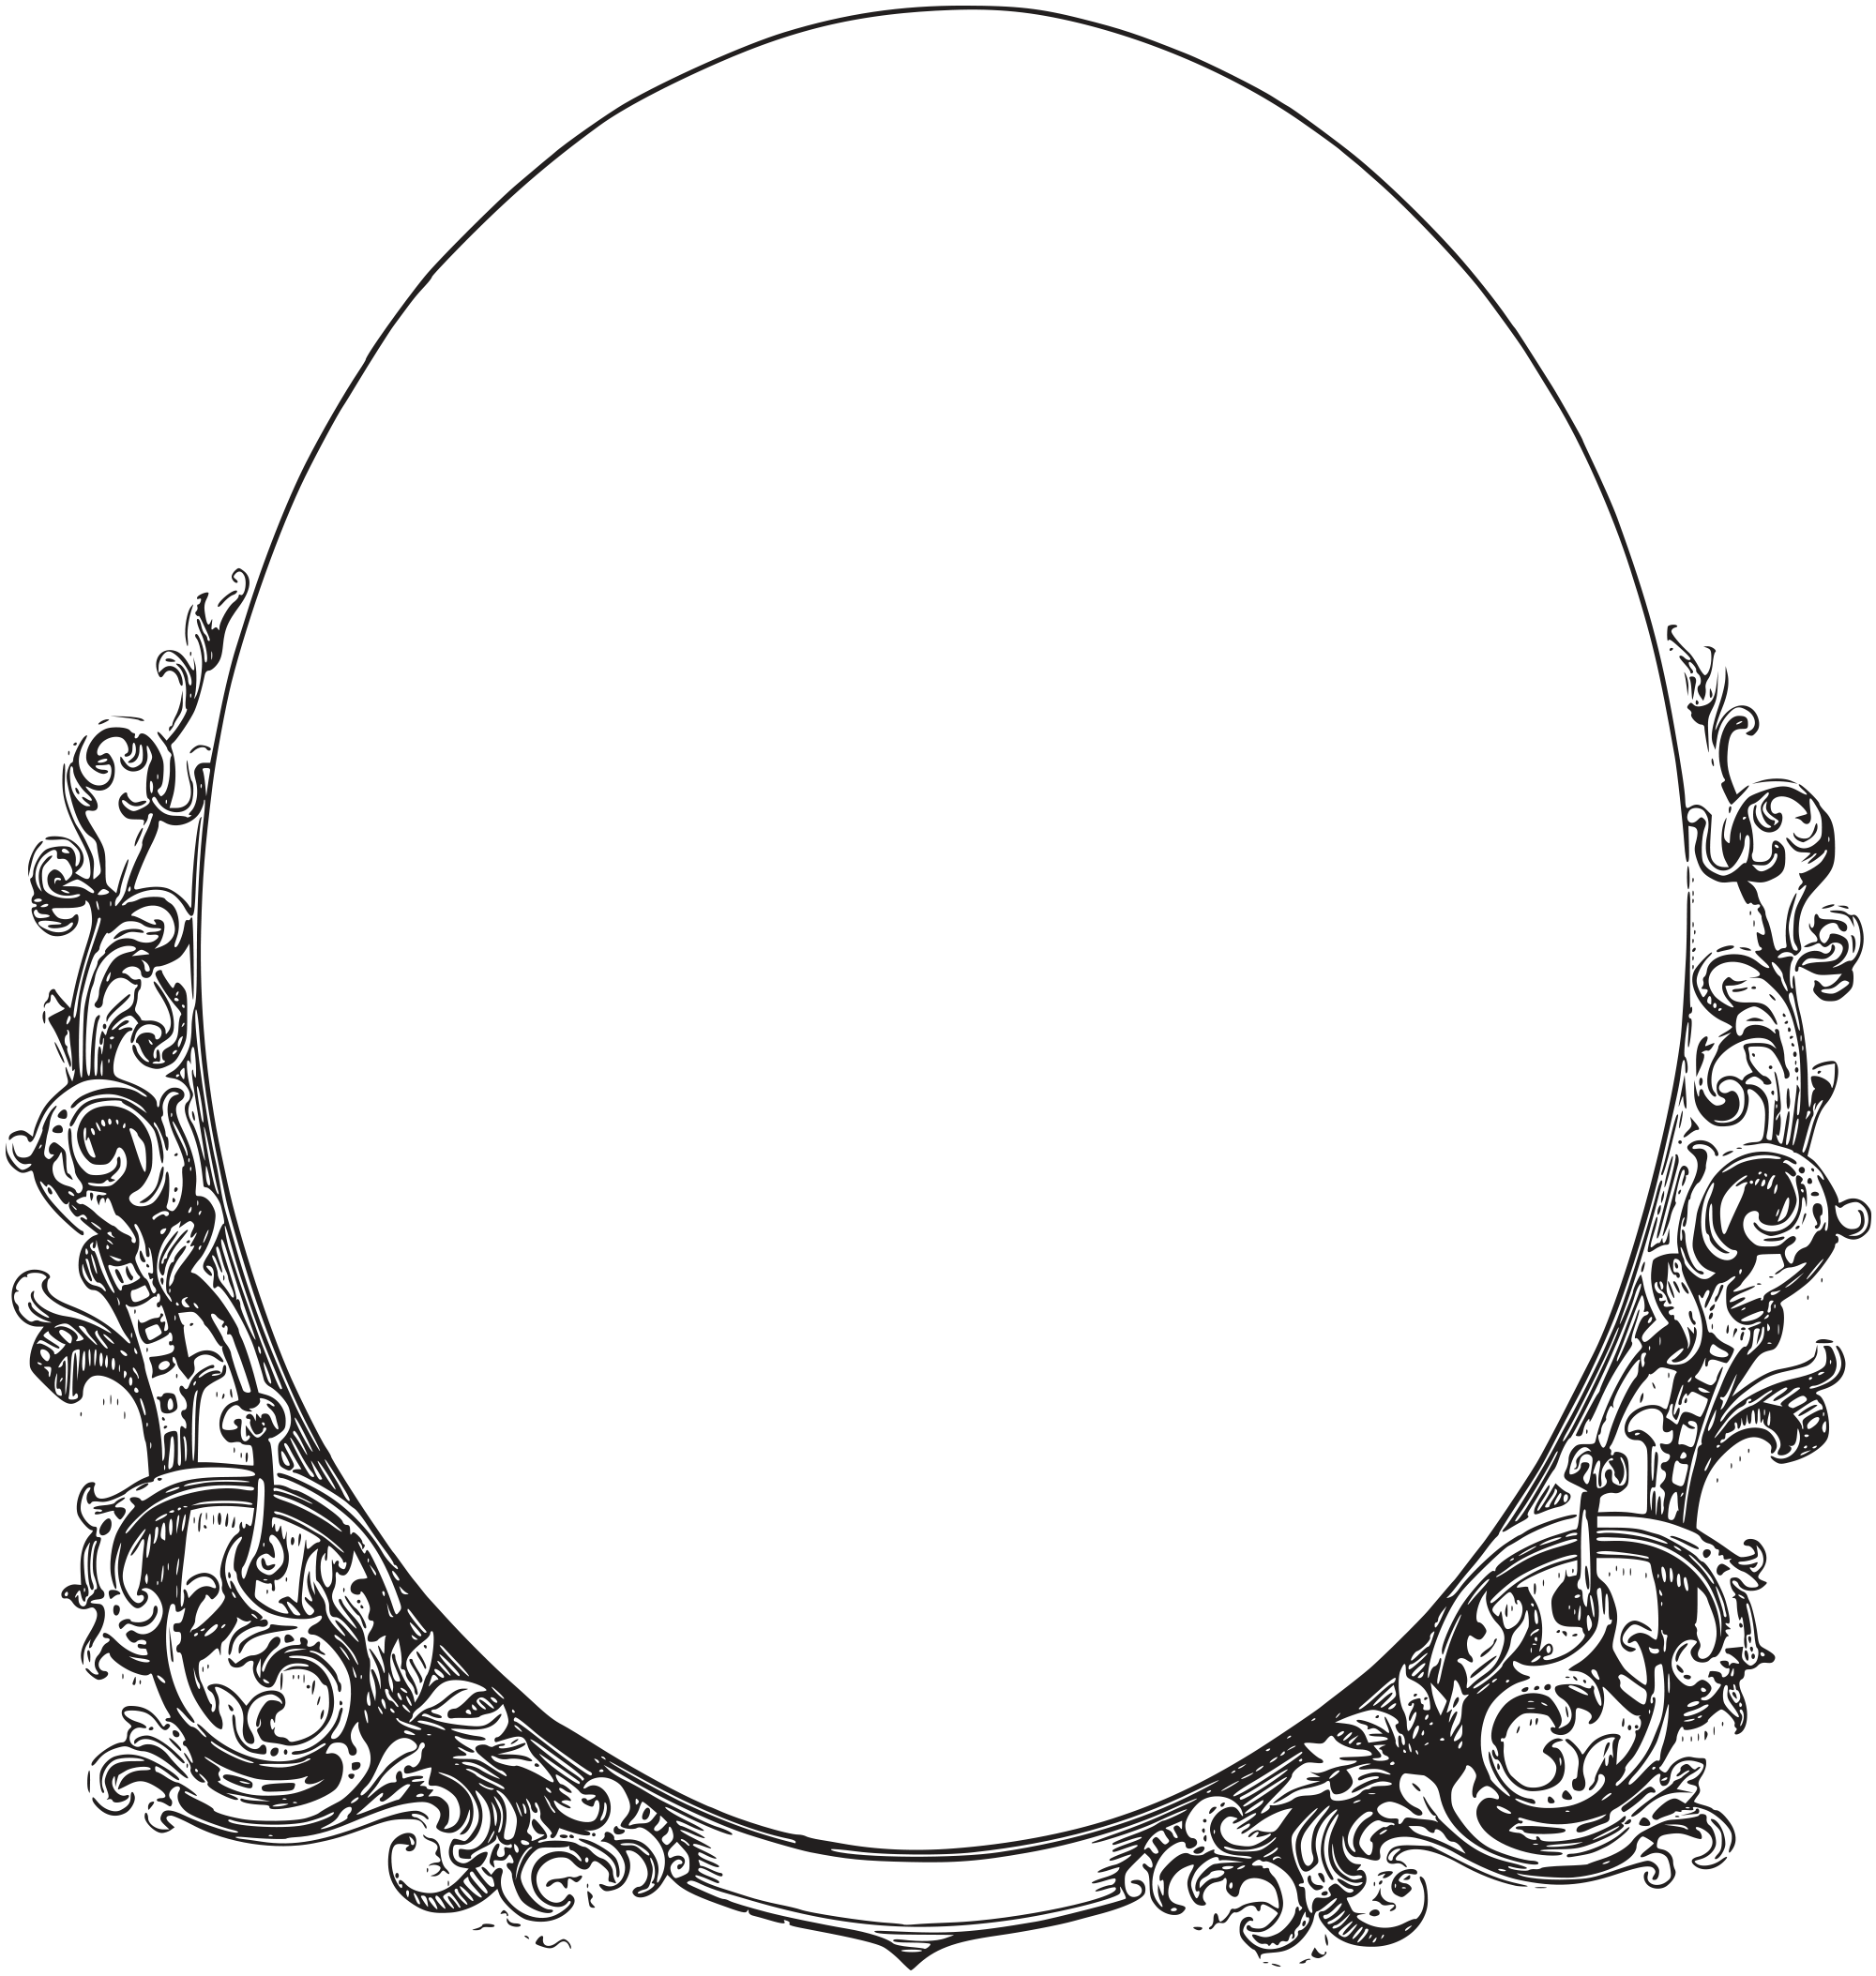 Royalty free images ornate. Oval border png